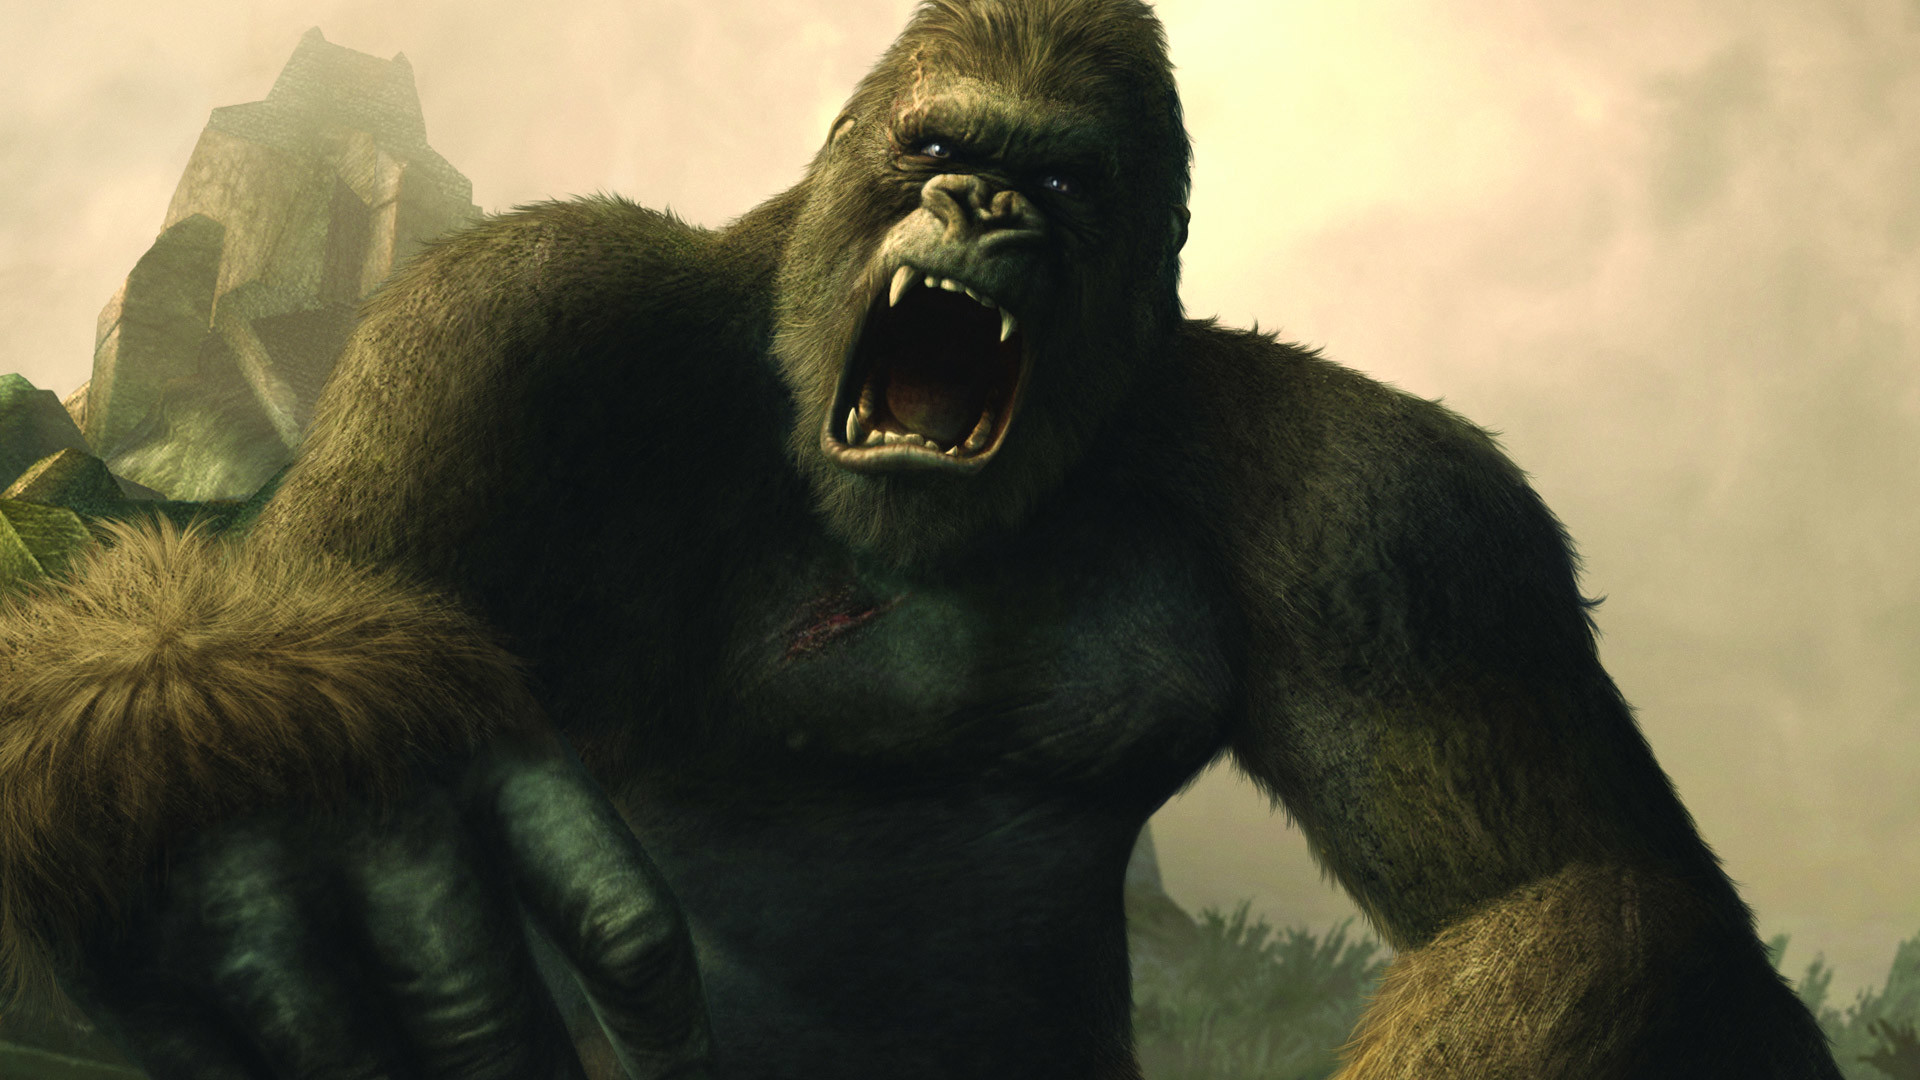 1920x1080 Free Peter Jackson's King Kong: The Official Game of the Movie Wallpaper in